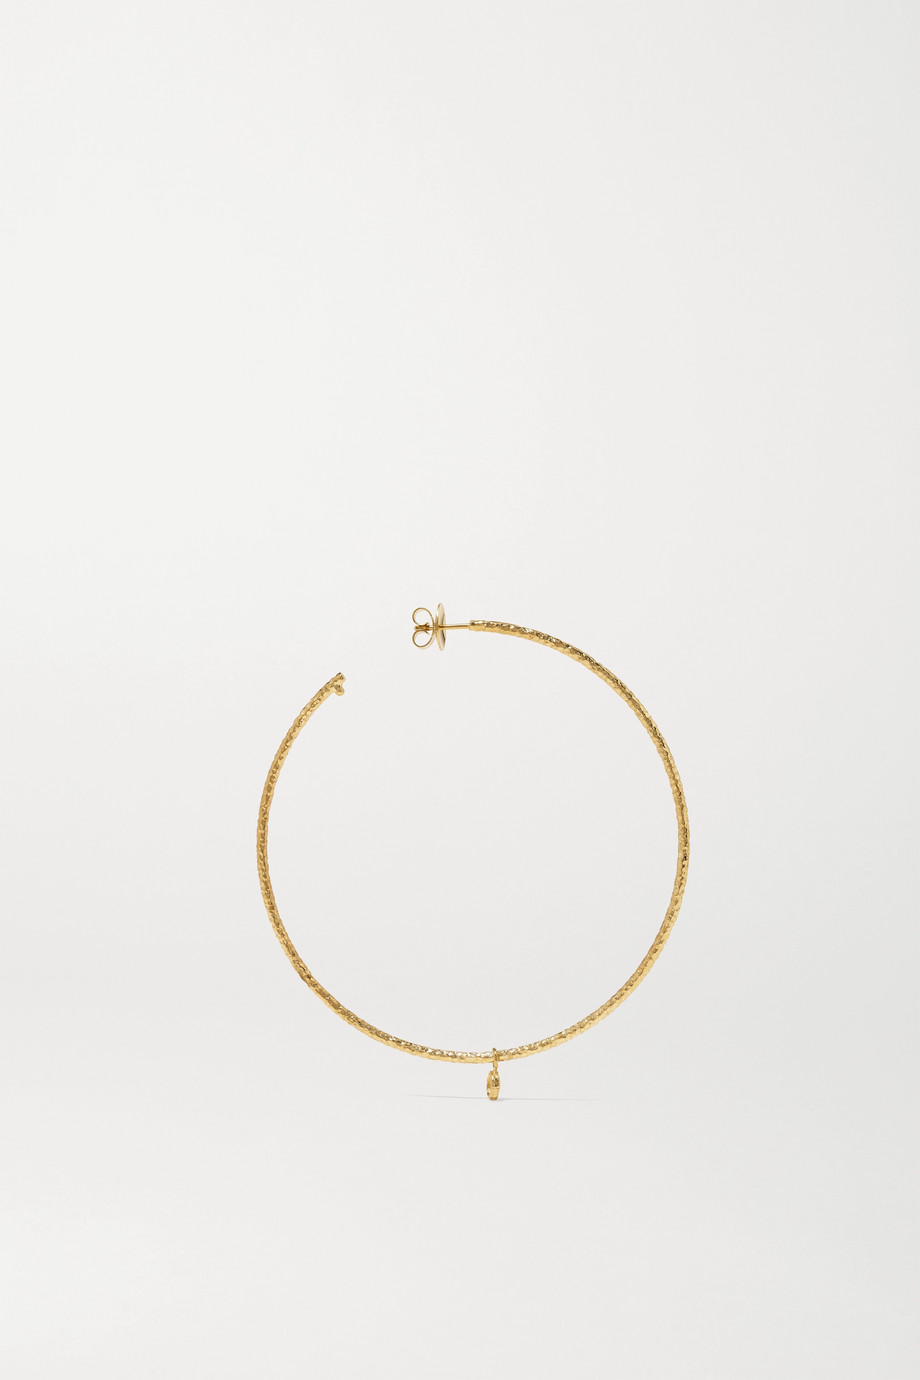 Octavia Elizabeth + NET SUSTAIN Large Nesting Gem 18-karat recycled gold diamond hoop earrings